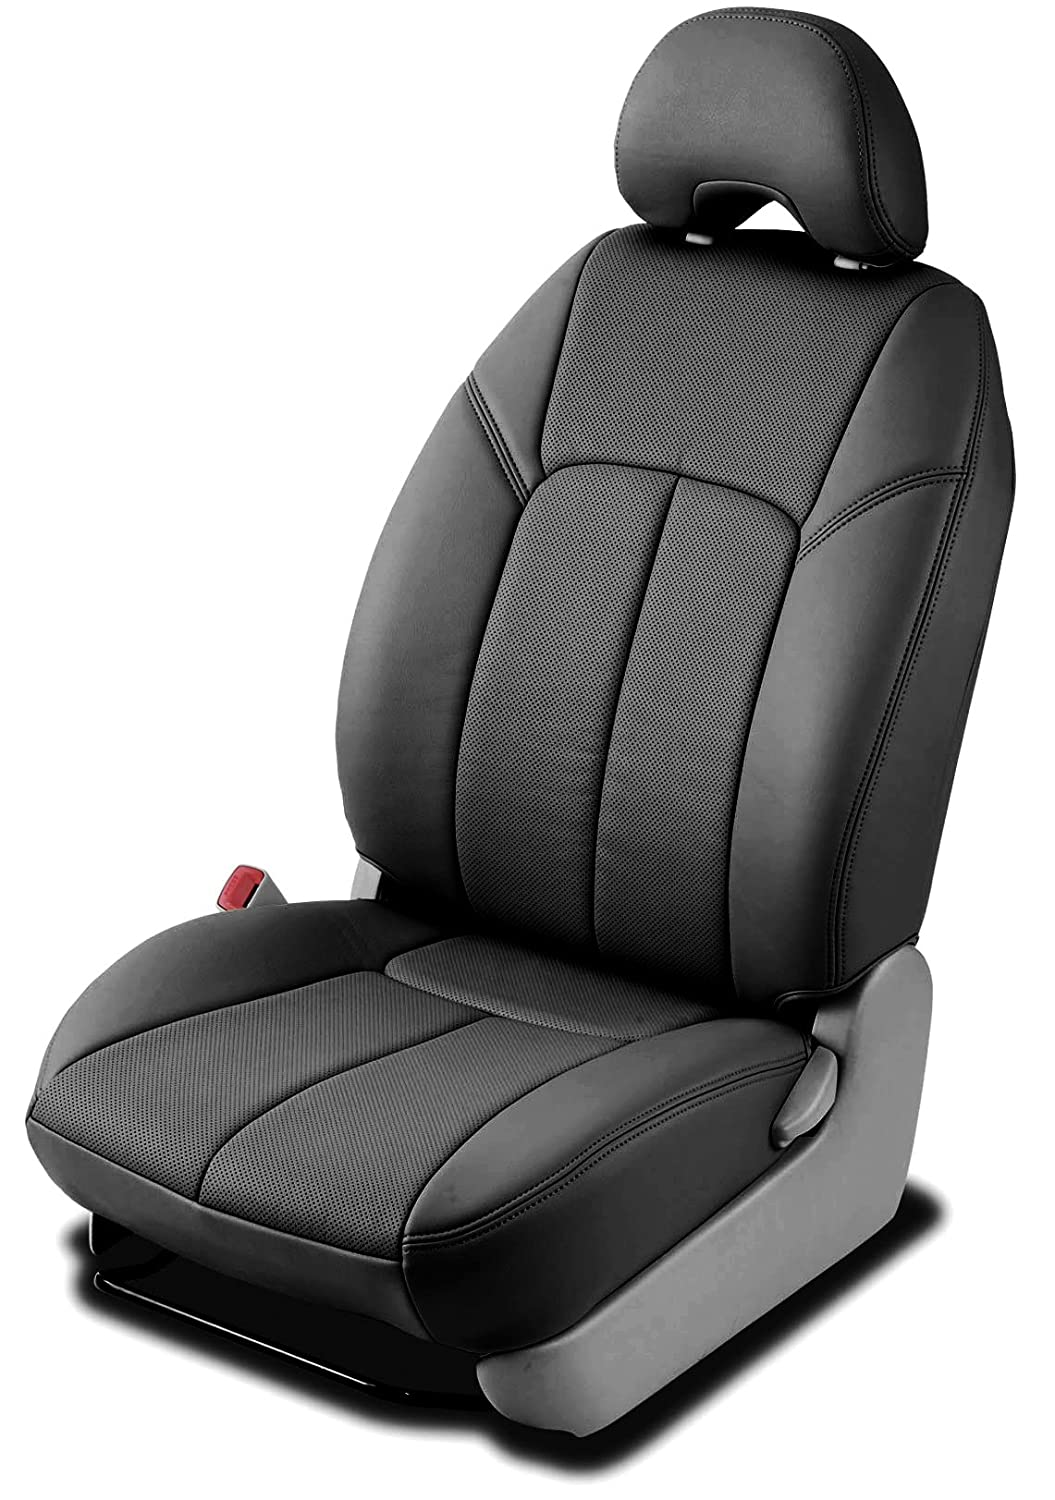 Clazzio 245711blk Black Leather Front Row Seat Cover for Toyota Rav4 Base